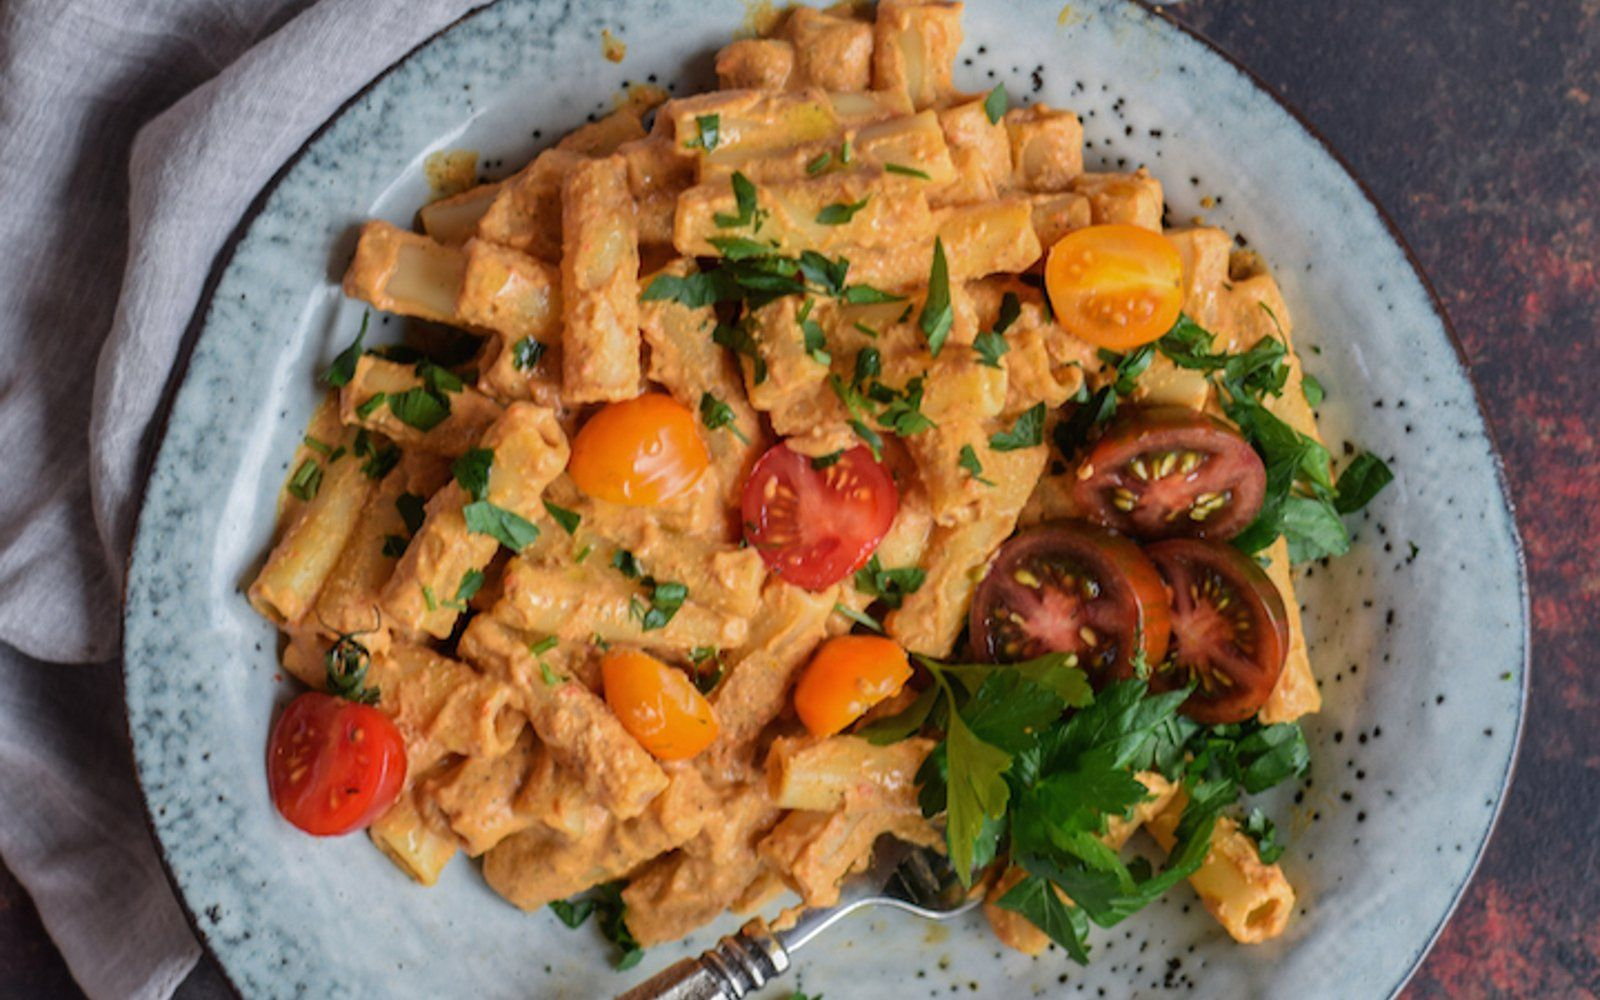 Creamy Roasted Red Pepper And Mushroom Sauce Vegan Gluten Free